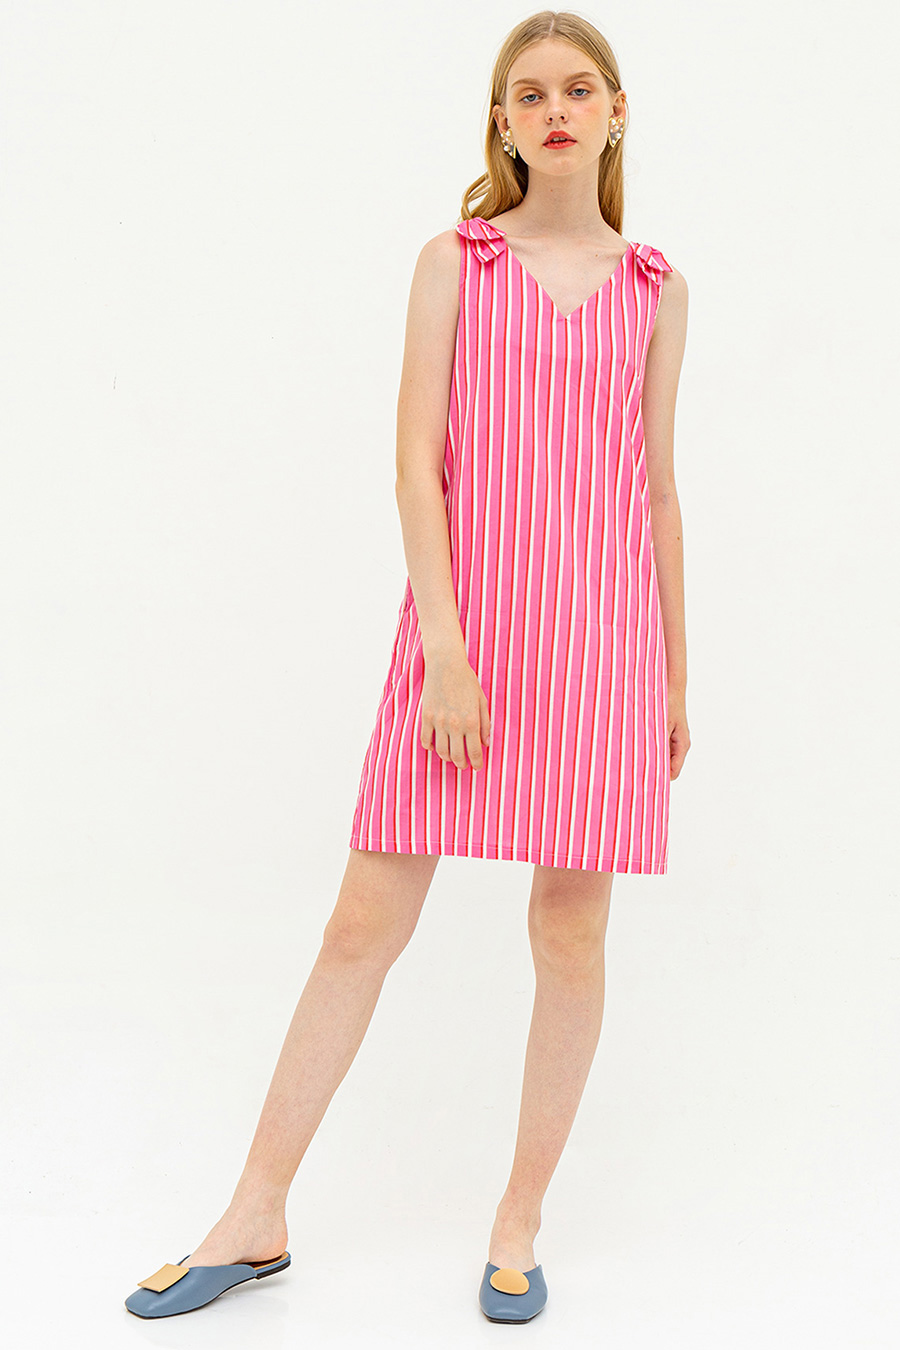 *SALE* BAMBINA DRESS - CANDY CANE [BY MODPARADE]